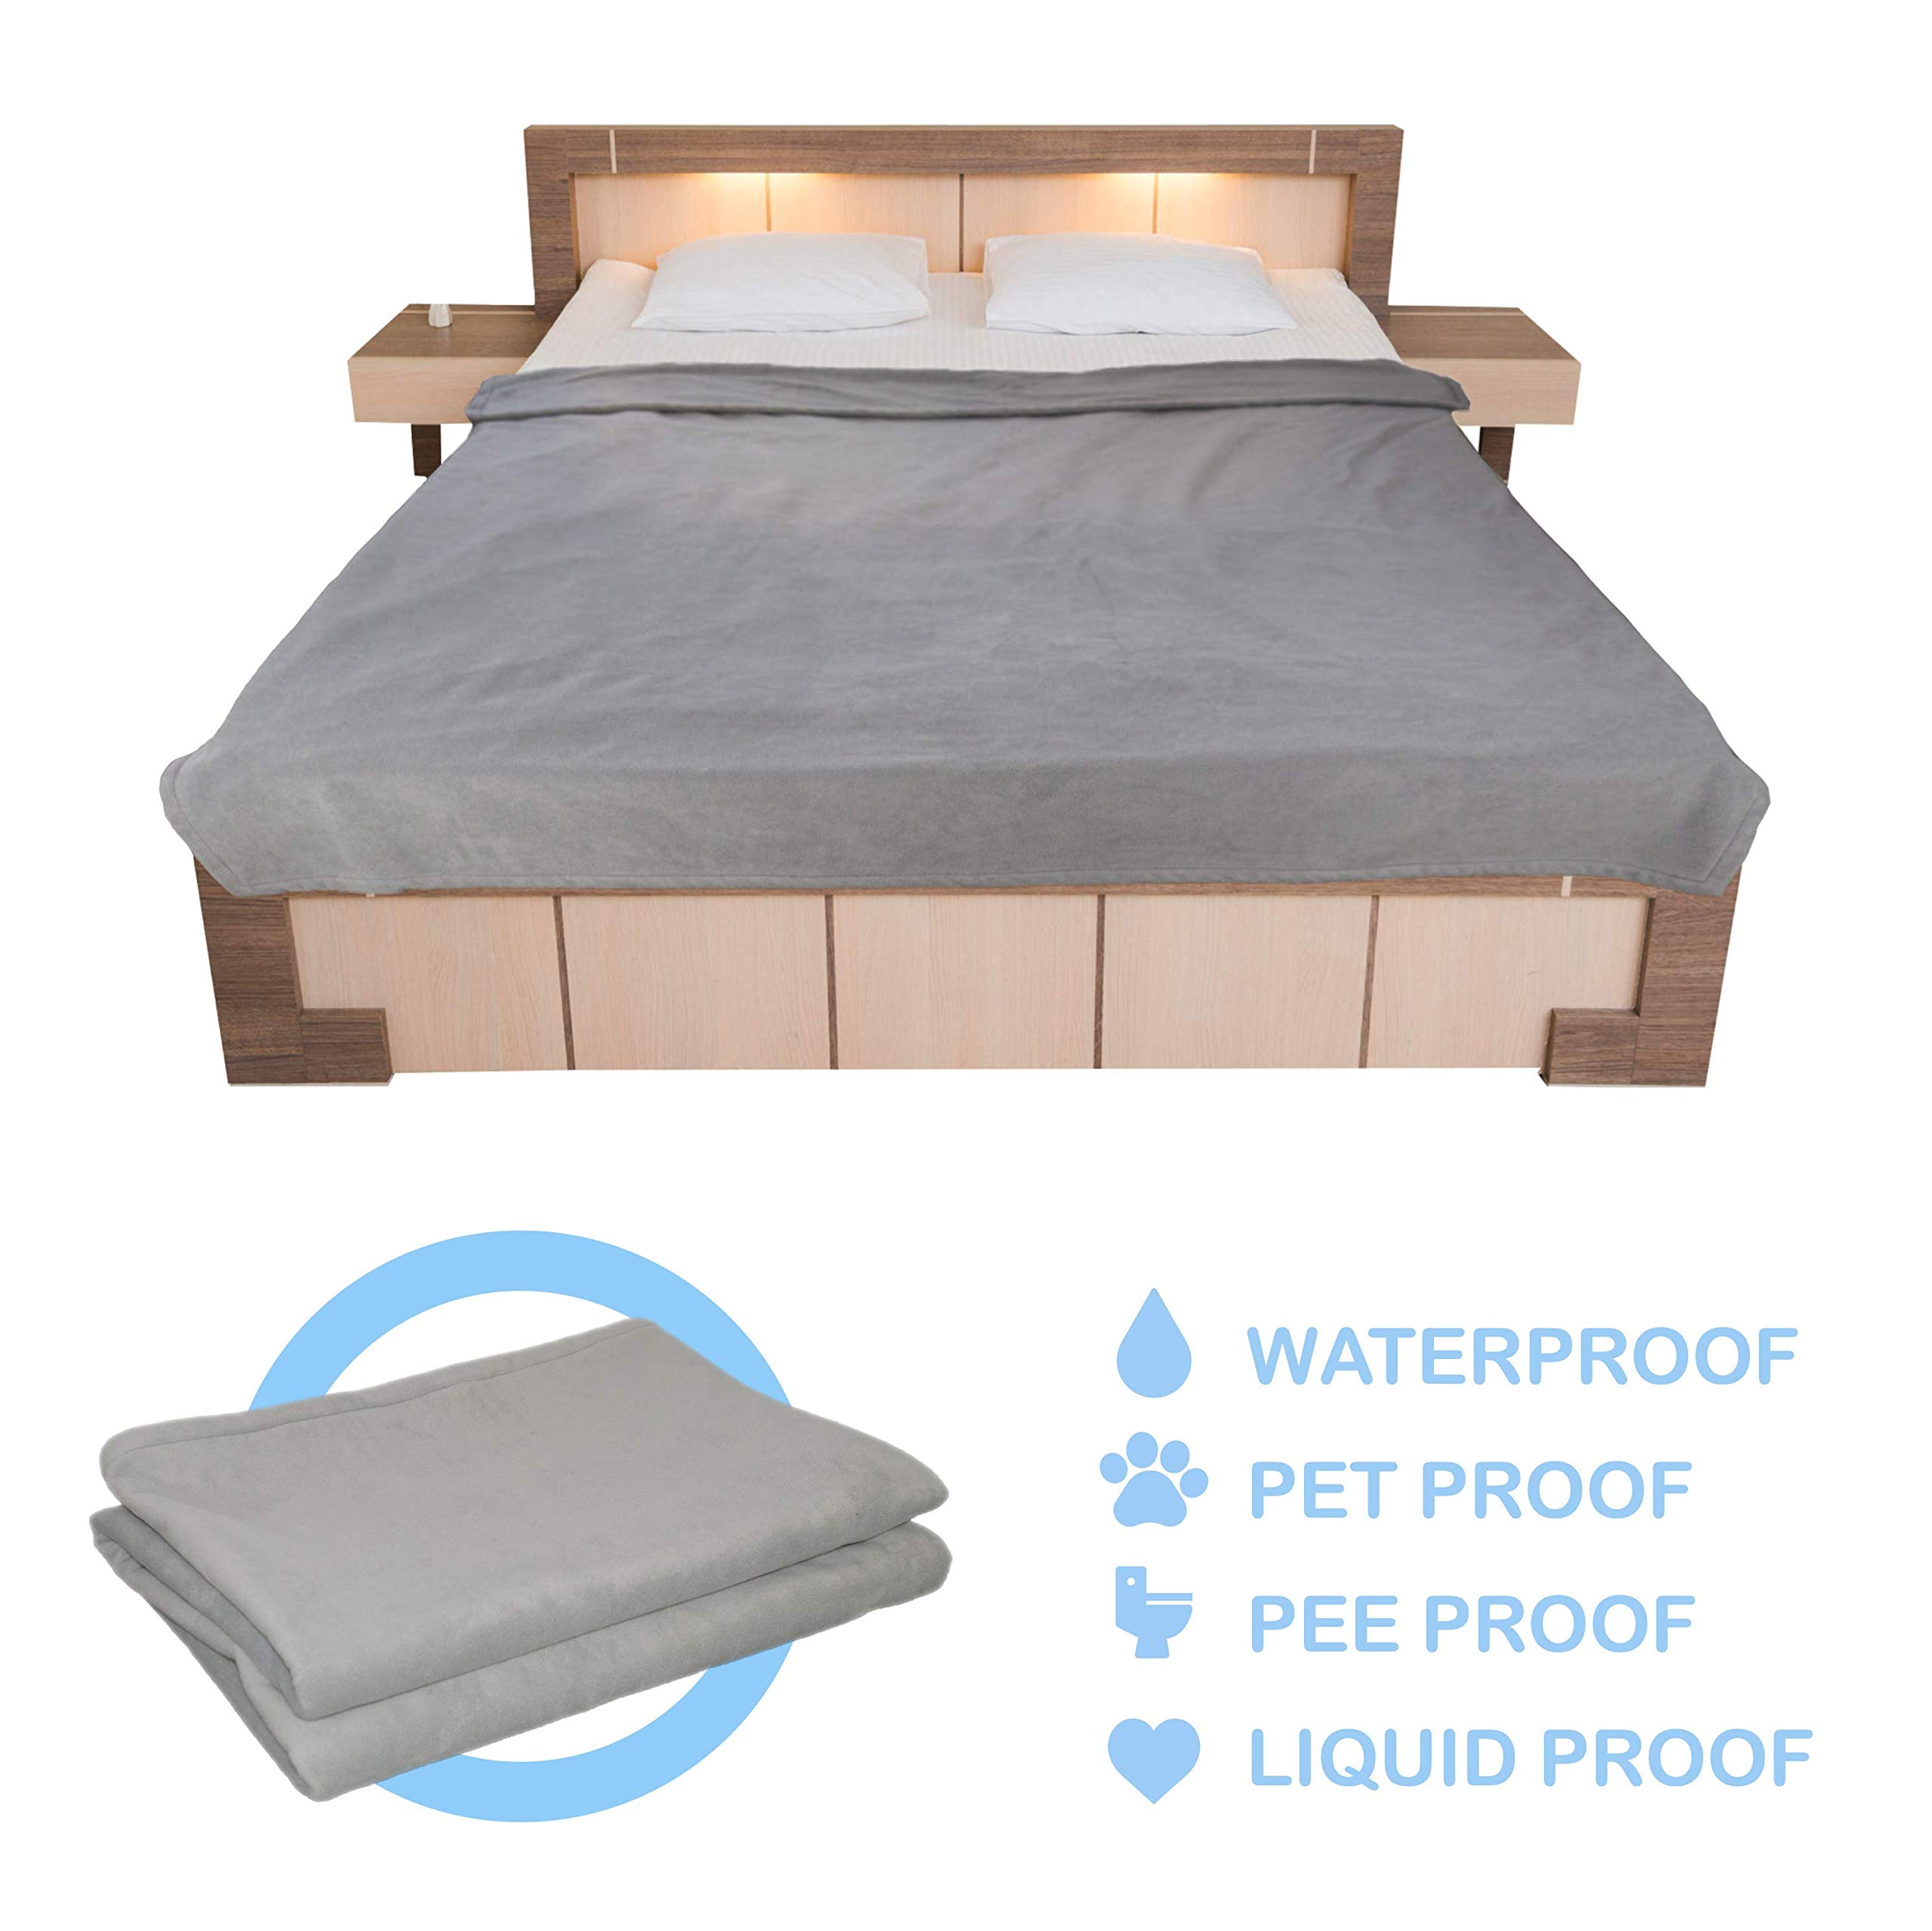 Standard Waterproof Fleece Blanket for Bed, Sofa, Couch, and Furniture Protection from Pets, Liquid, Pee, and for Outdoor Use by Kove Blanket